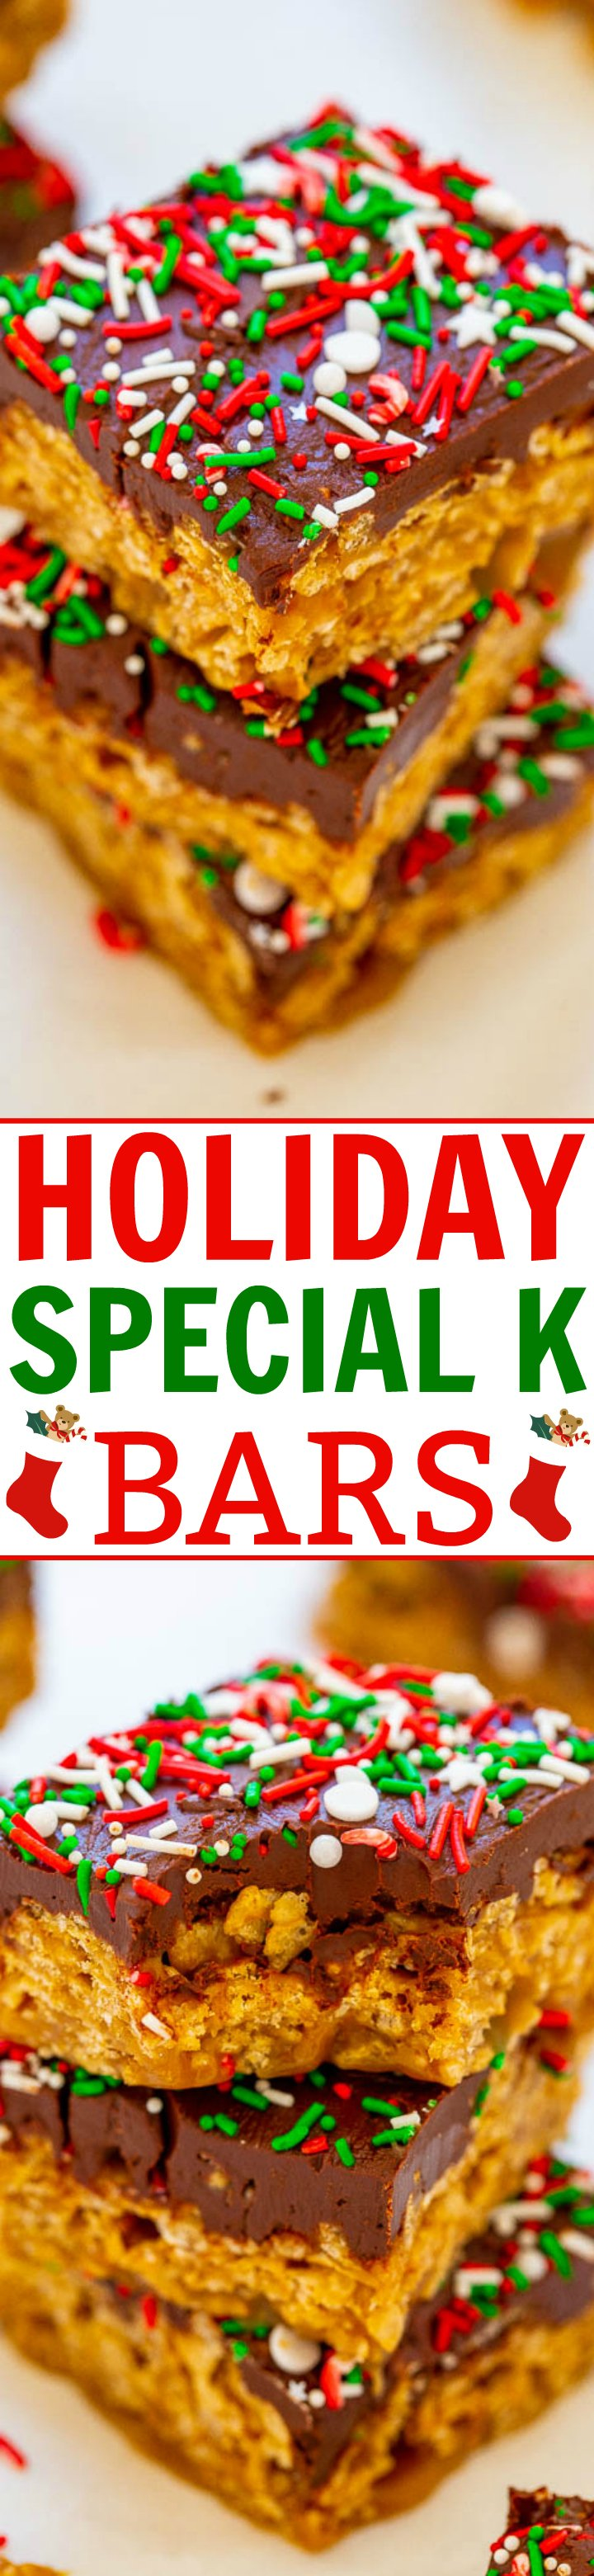 Holiday Special K Bars - Super chewy, gooey, FAST, easy, no-bake cereal bars loaded with peanut butter, chocolate, and sprinkles!! Like scotcheroos but with Special K! Great for impromptu hostess gifts or cookie exchanges because they're irresistible!!